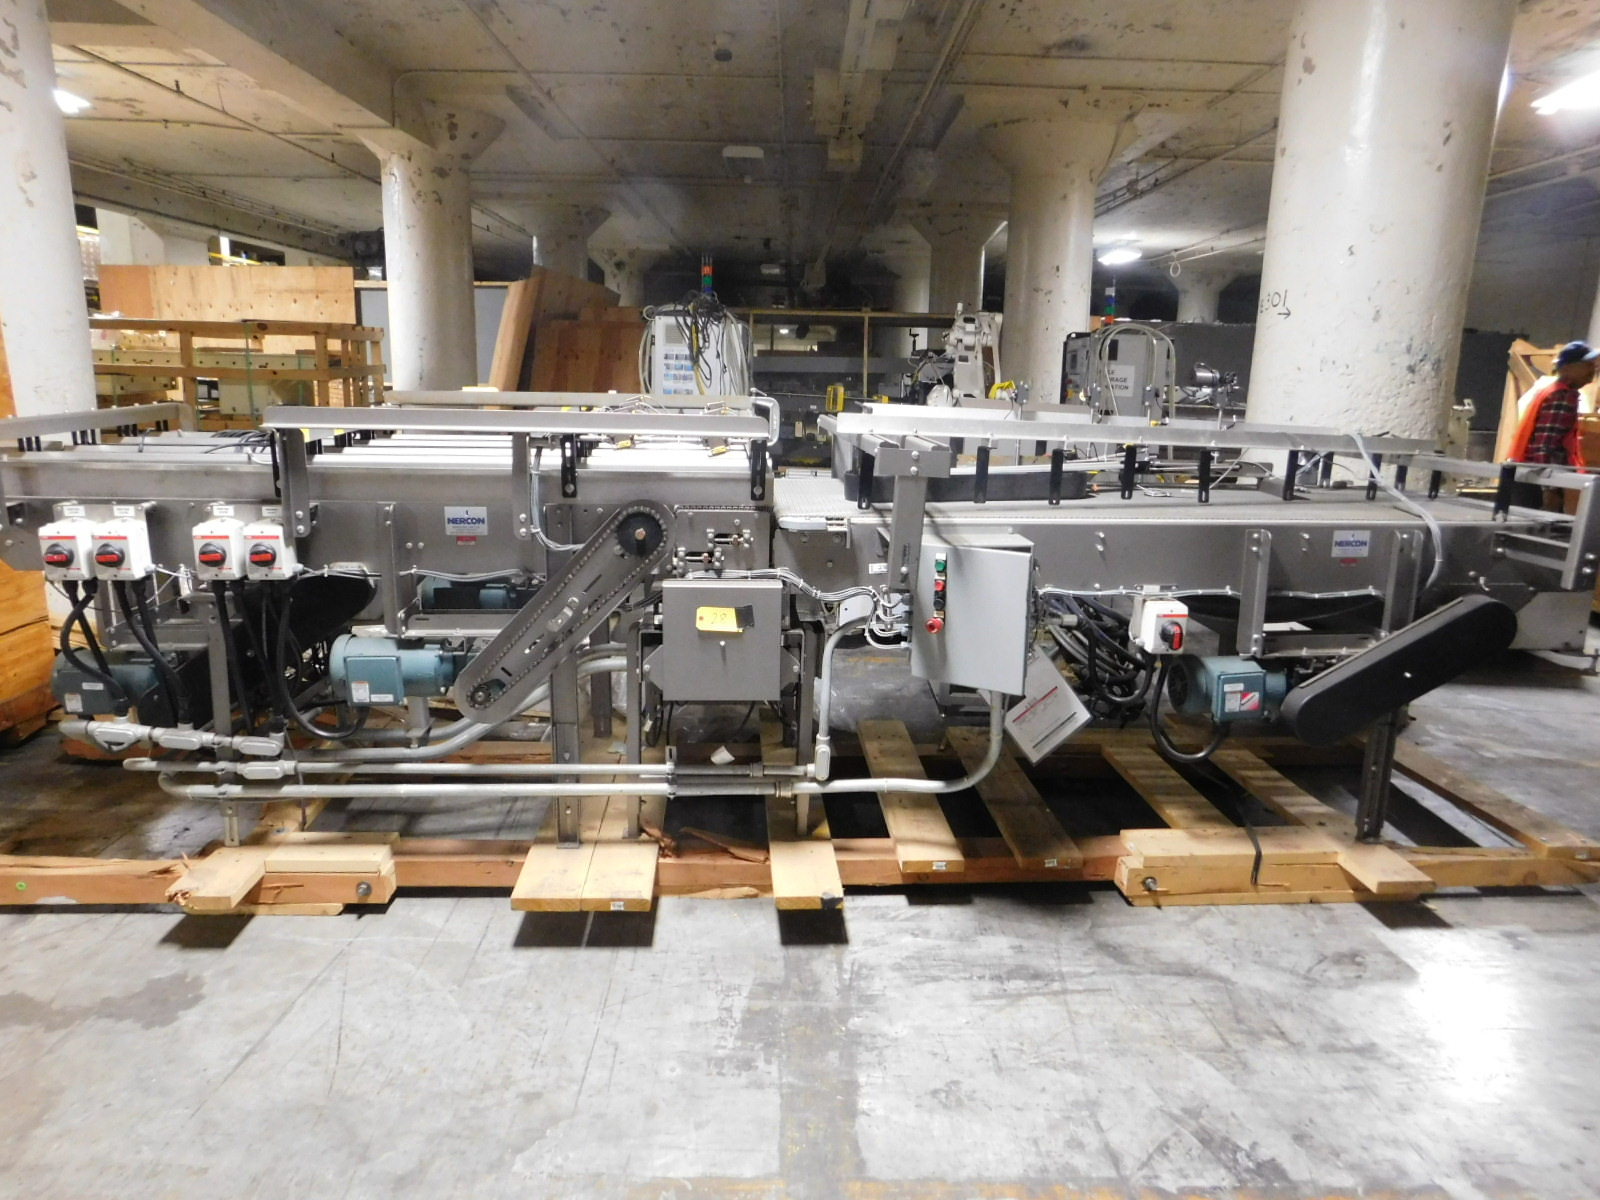 Lot 28 - Nercon Conveyor 3x 8' Stainless Steel construction :equipment located at Clark Logistic Services |